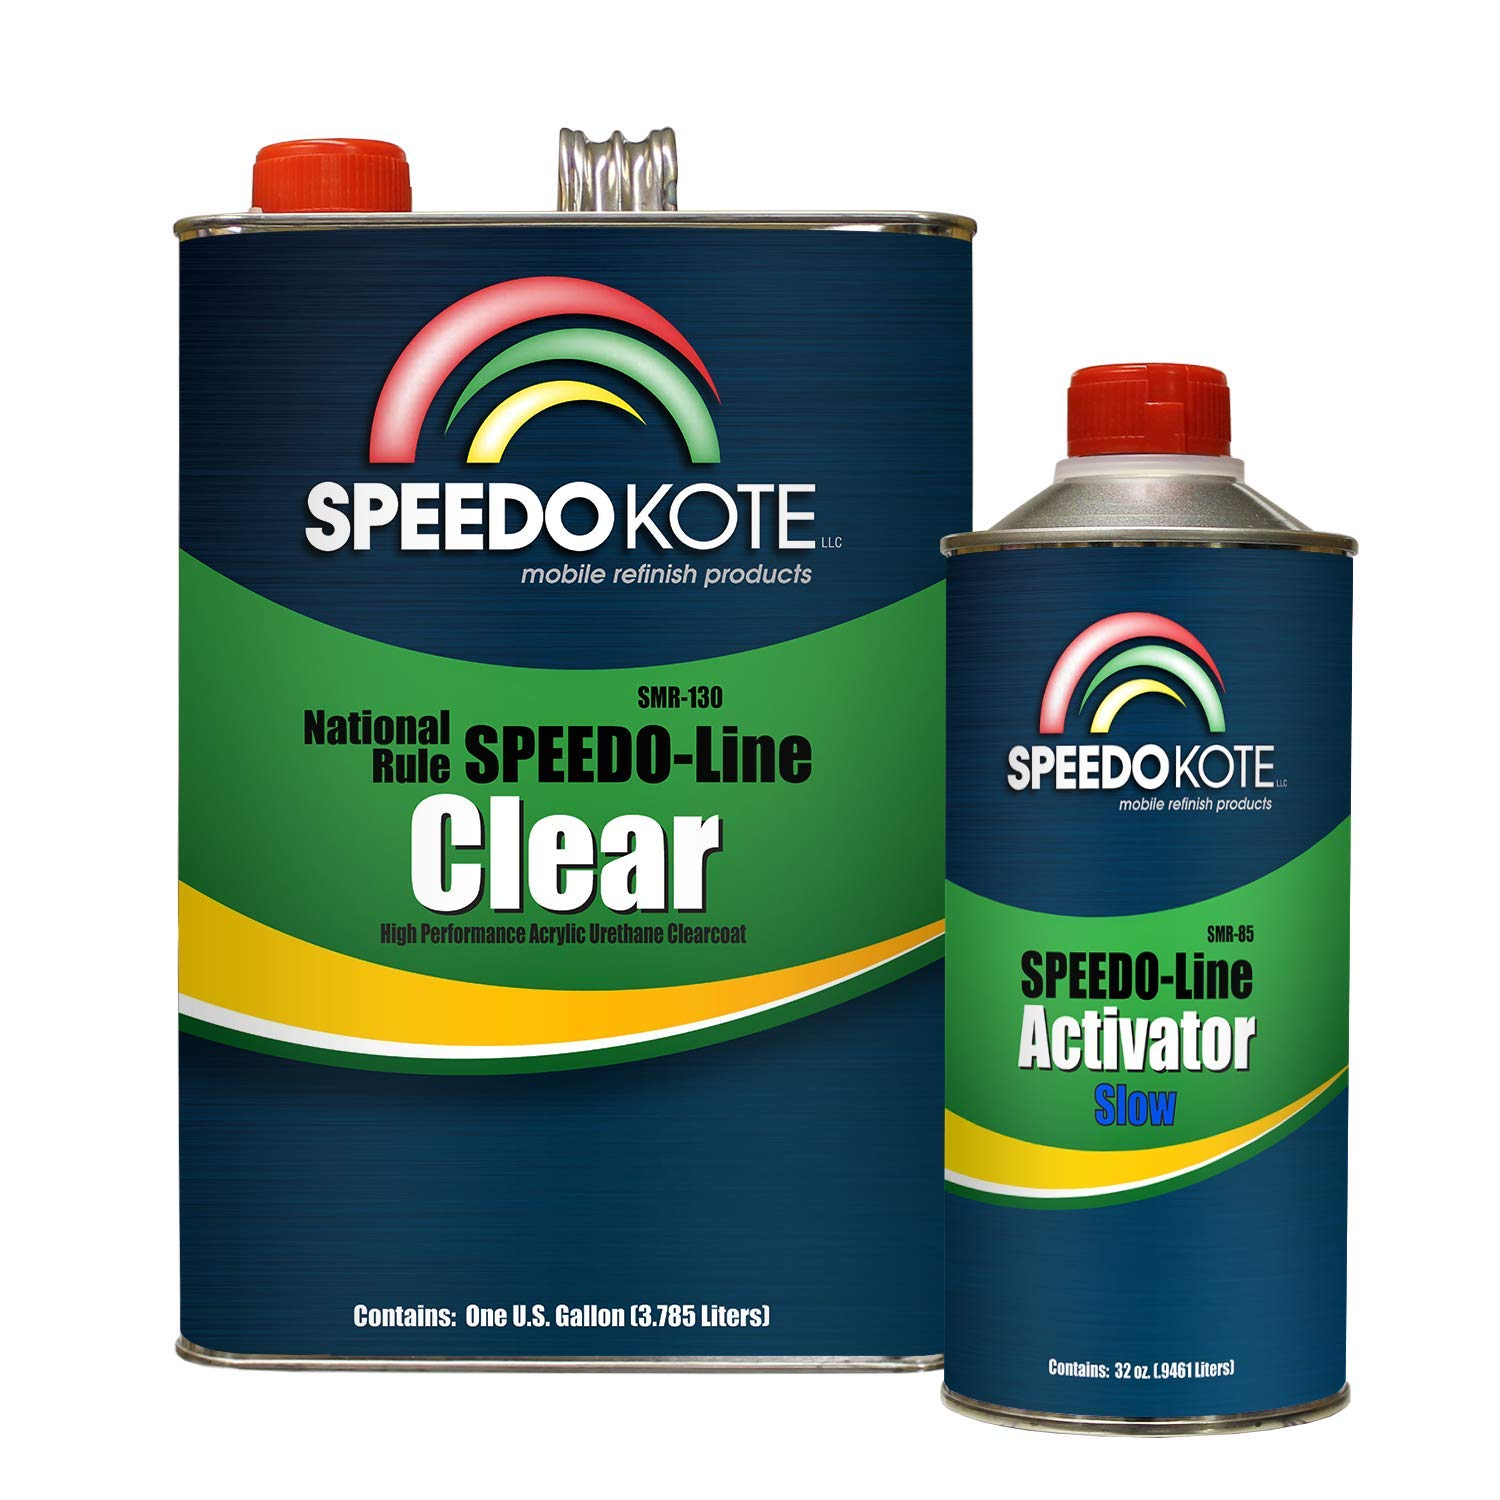 Speedokote SMR-130/85 - Automotive Clear Coat Fast Dry 2K Urethane, 4:1 Gallon Clearcoat Kit with Slow Activator by Speedokote